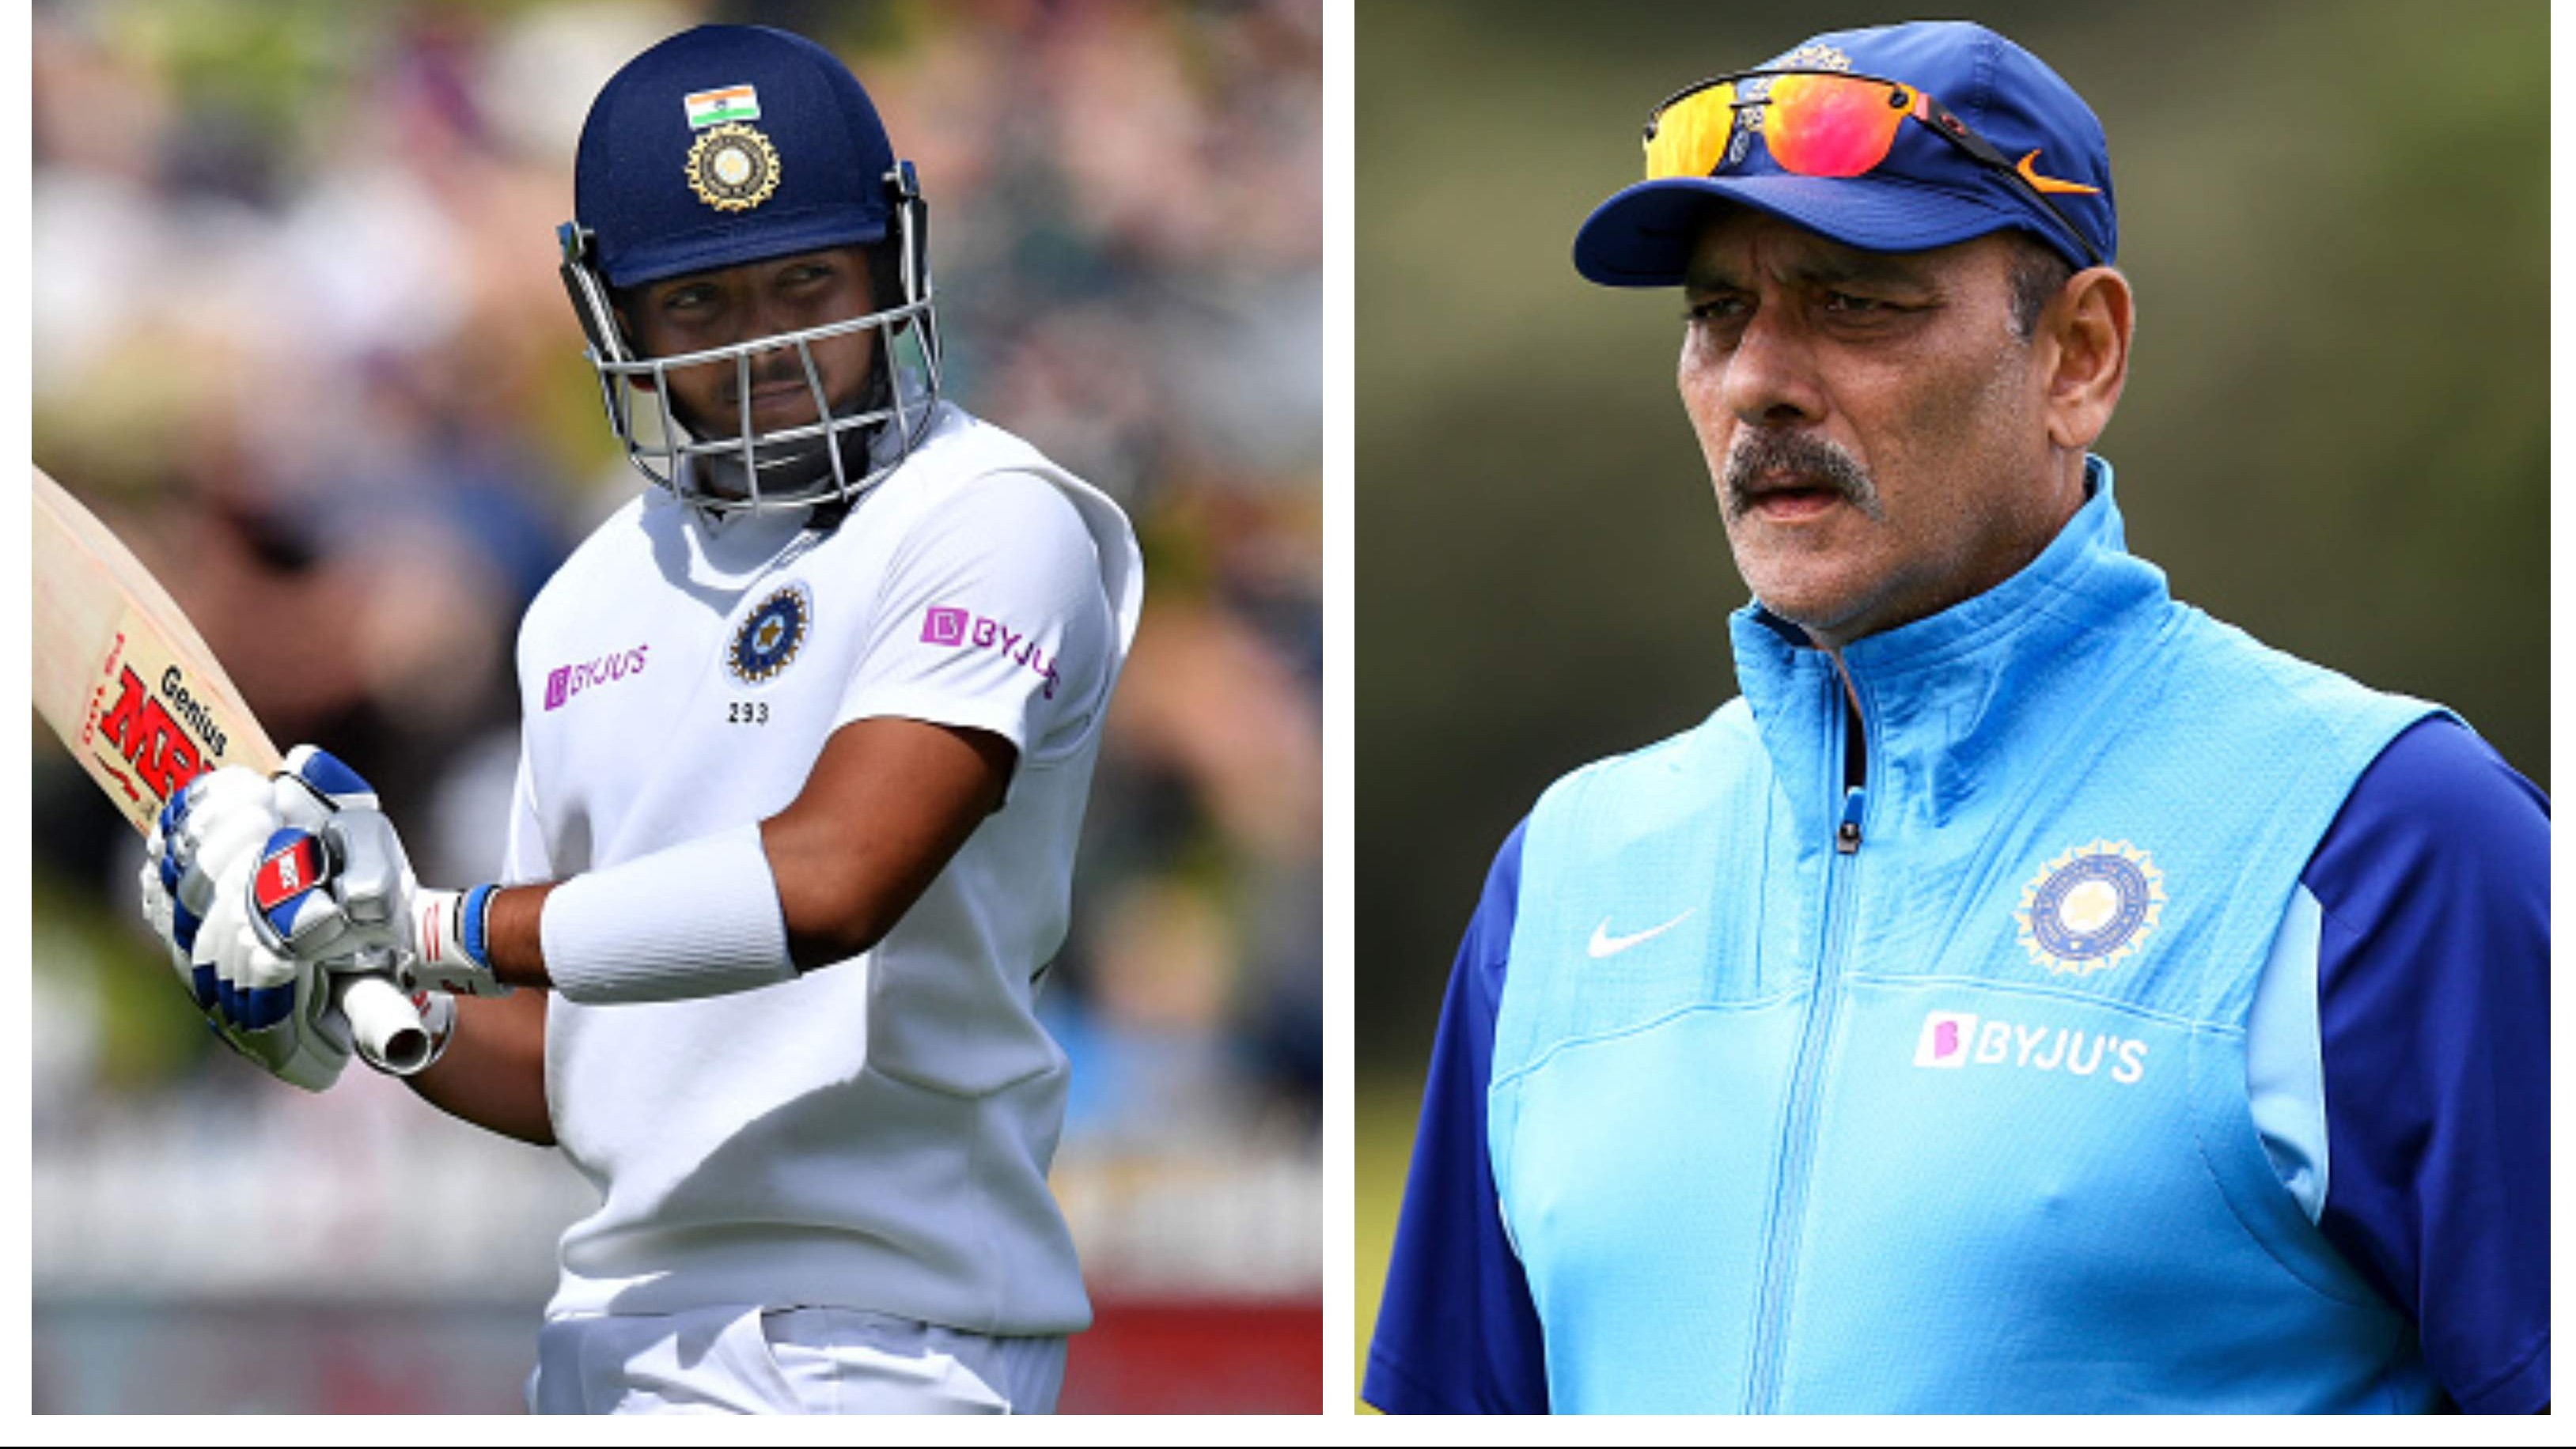 NZ v IND 2020: Ravi Shastri shares update on Prithvi Shaw's foot injury